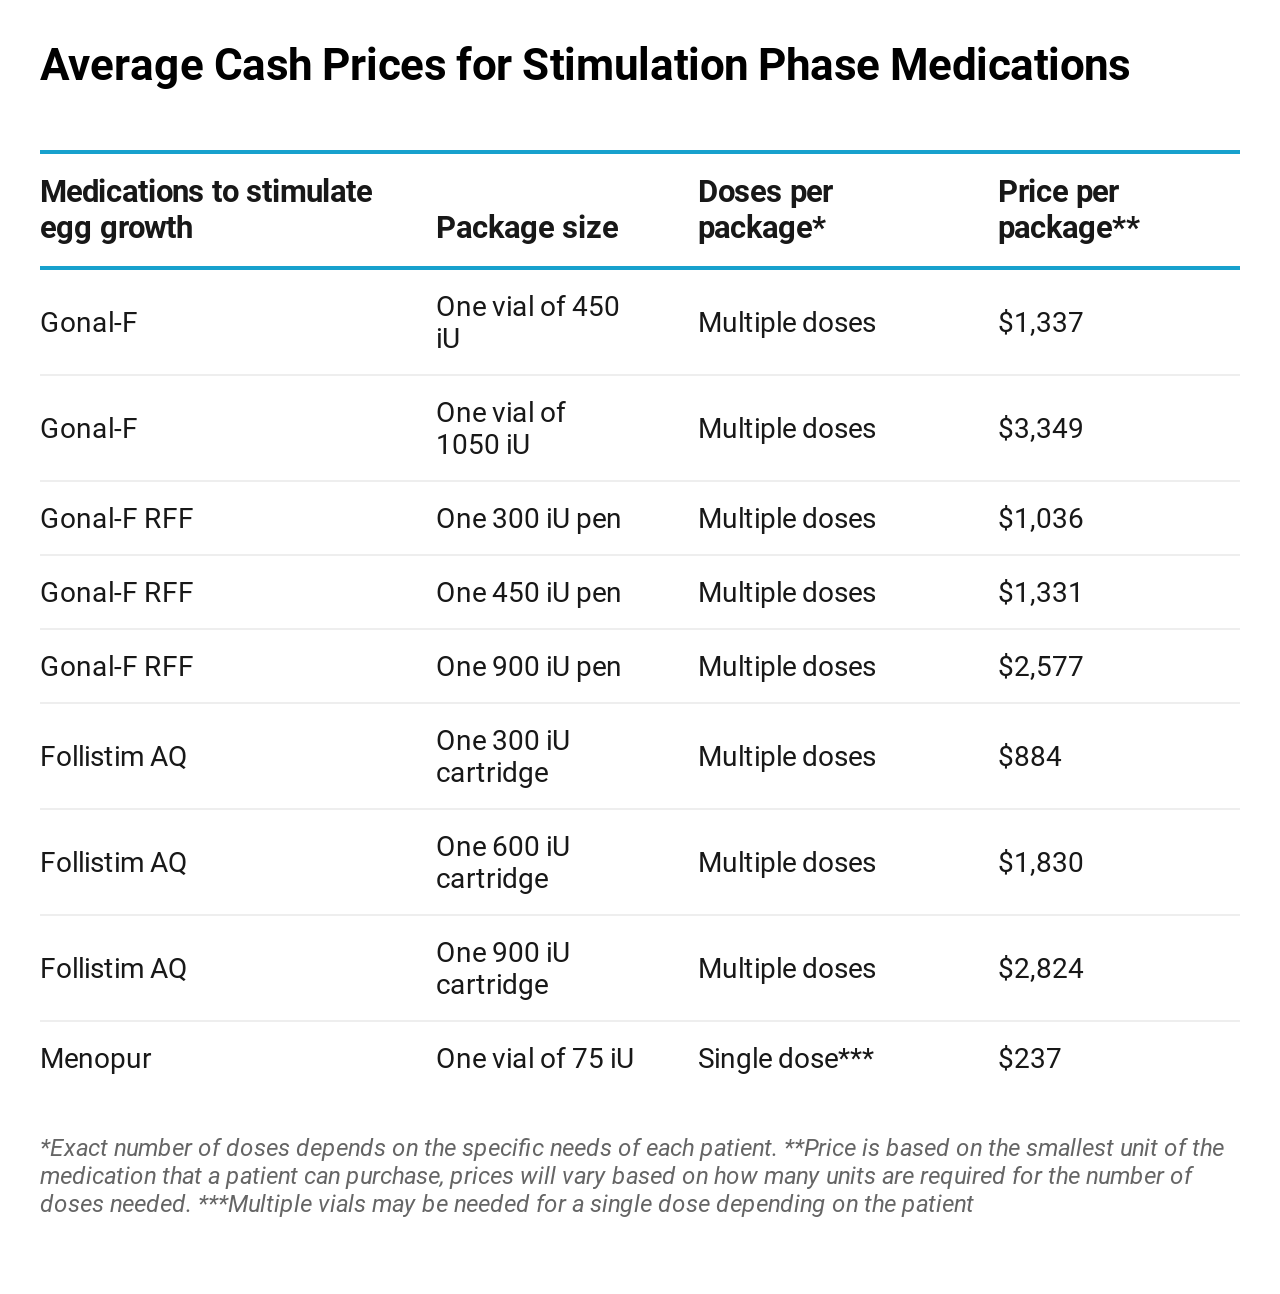 IVF stimulation medications cost price